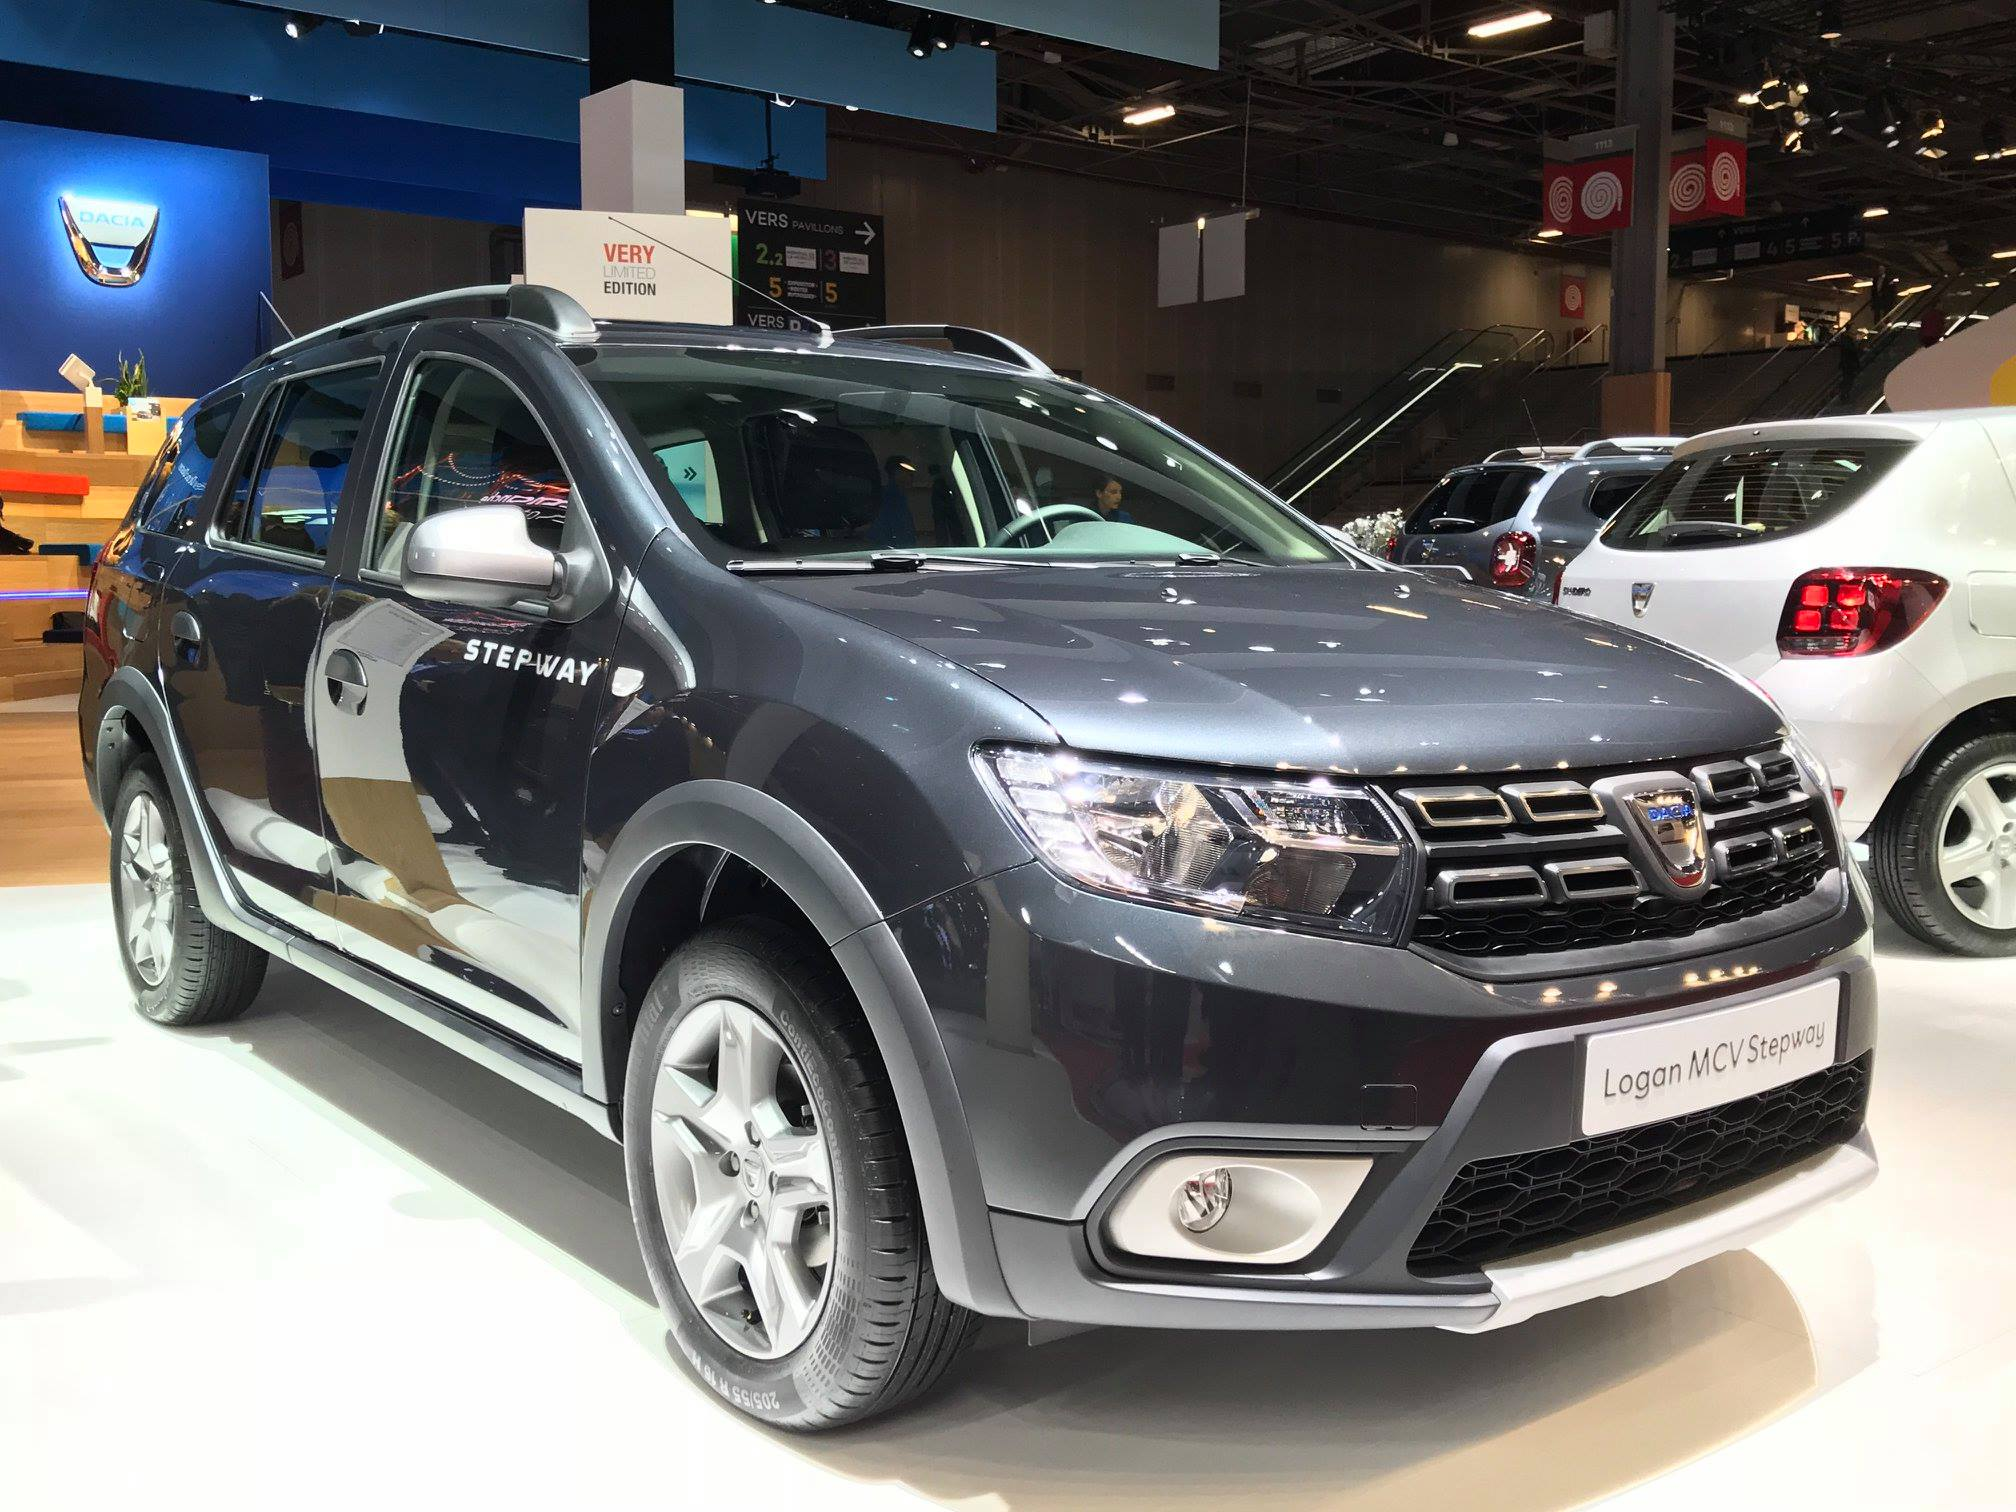 dacia duster gets 1 3 tce turbo with 130 and 150 hp autoevolution. Black Bedroom Furniture Sets. Home Design Ideas